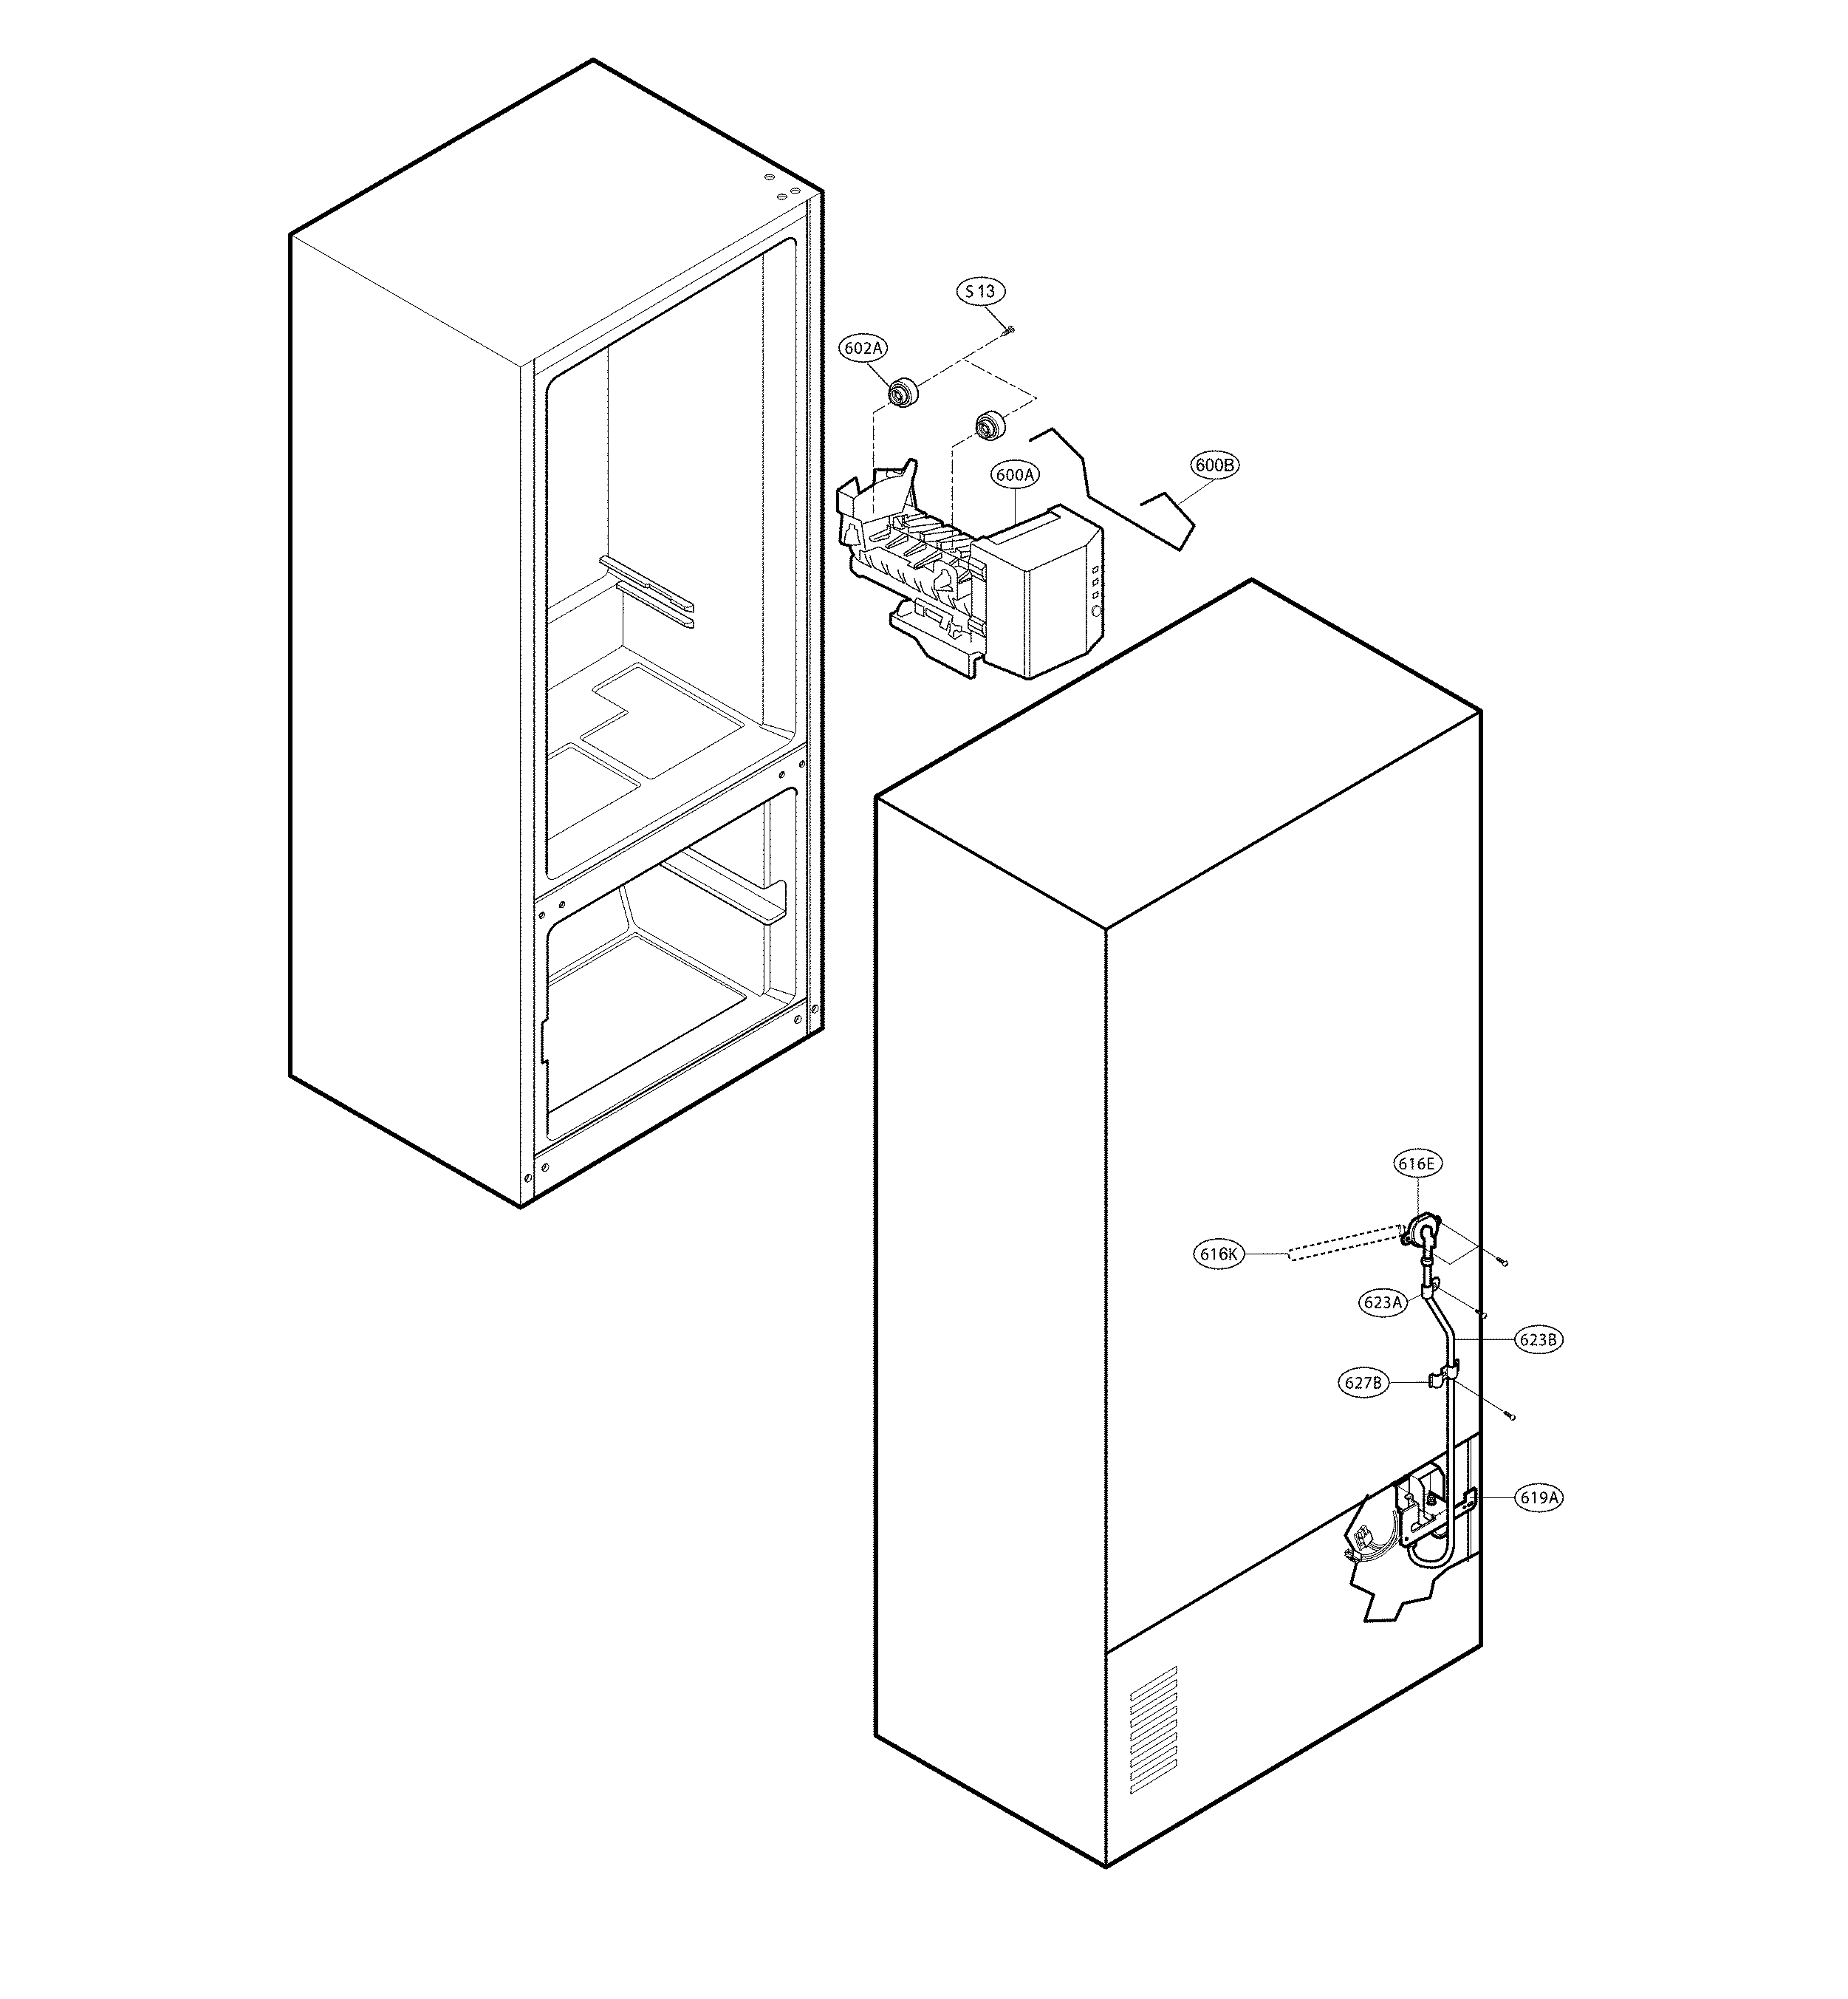 LG LFC25770SB/02 water and ice parts diagram